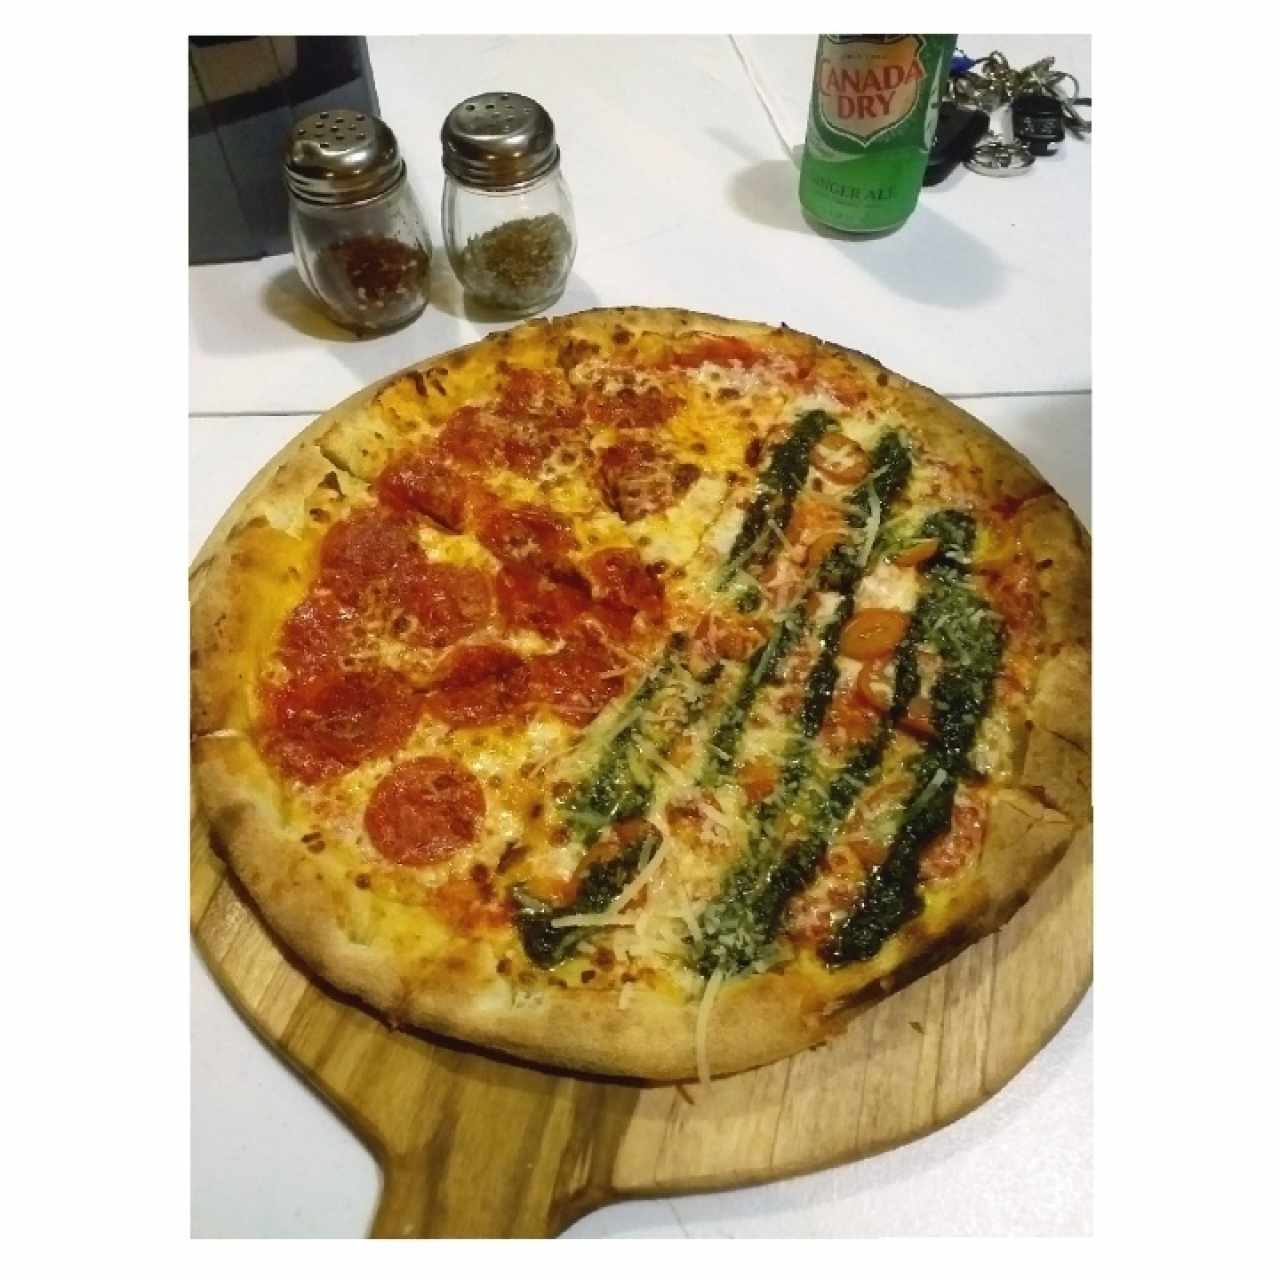 pizza mediana de peperoni / pesto